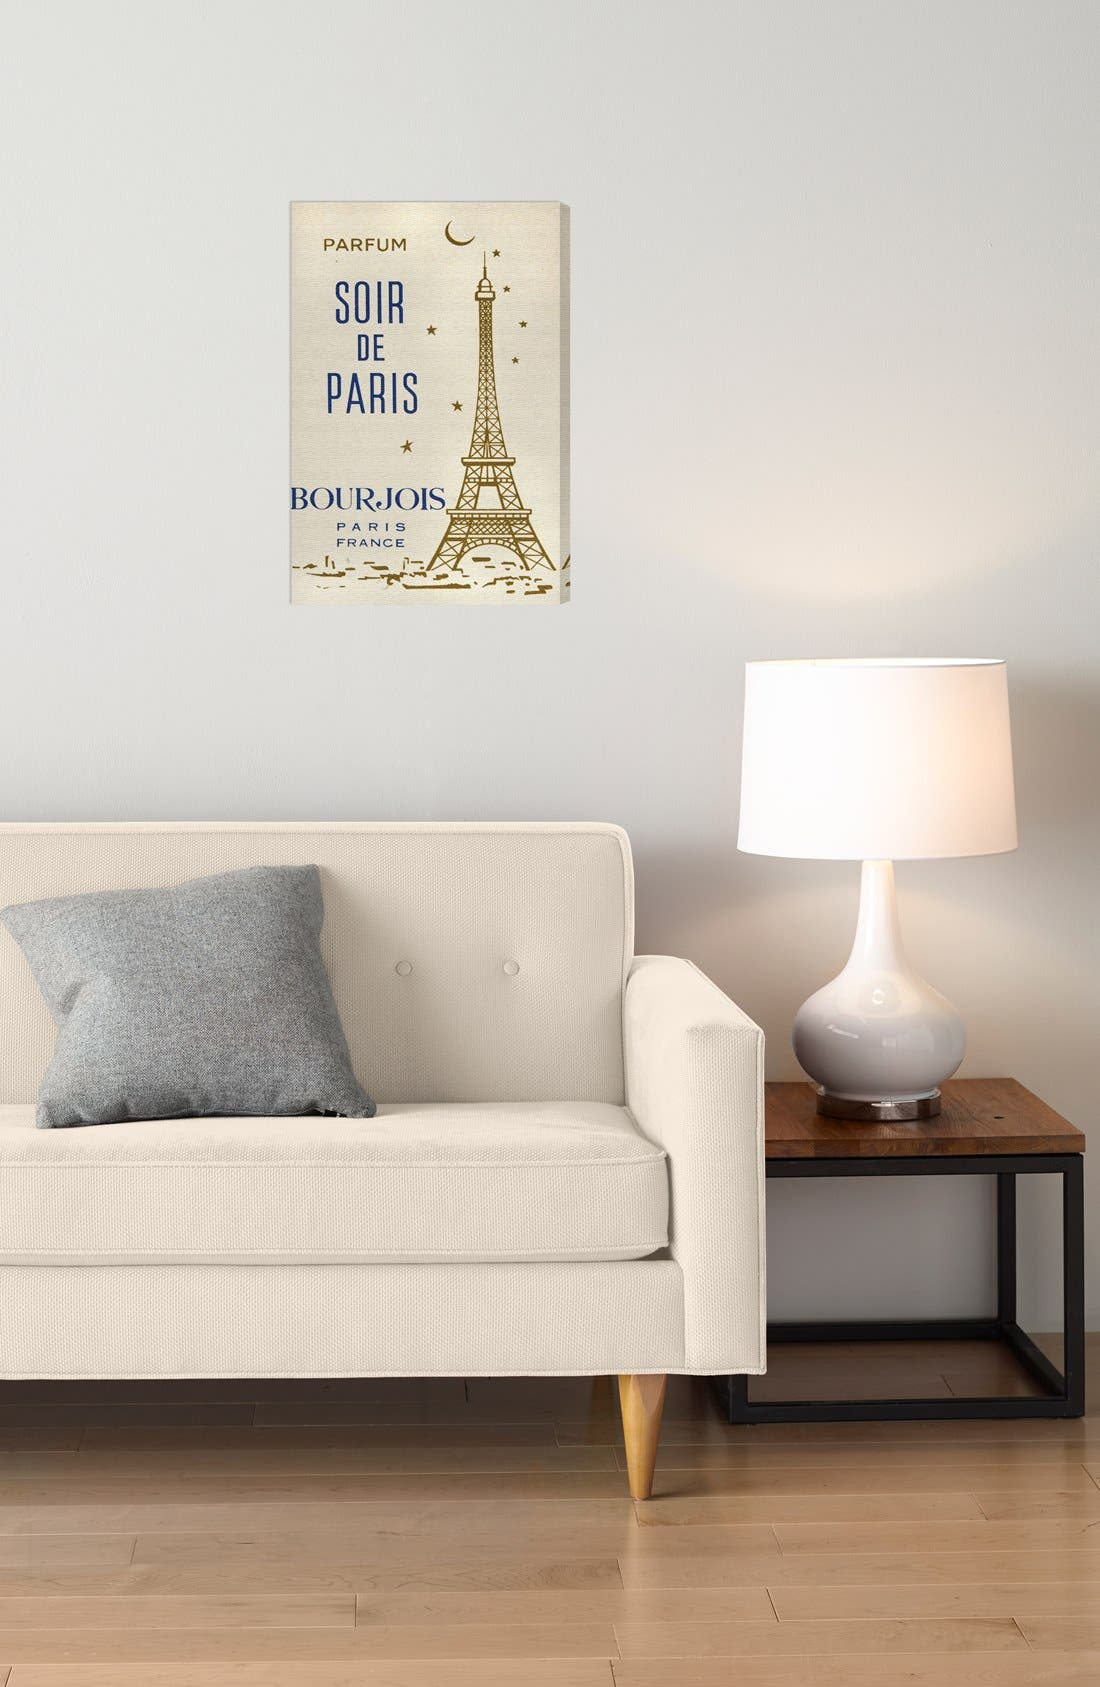 'Parfum Soir de Paris' Wall Art,                             Alternate thumbnail 2, color,                             Beige/ Khaki